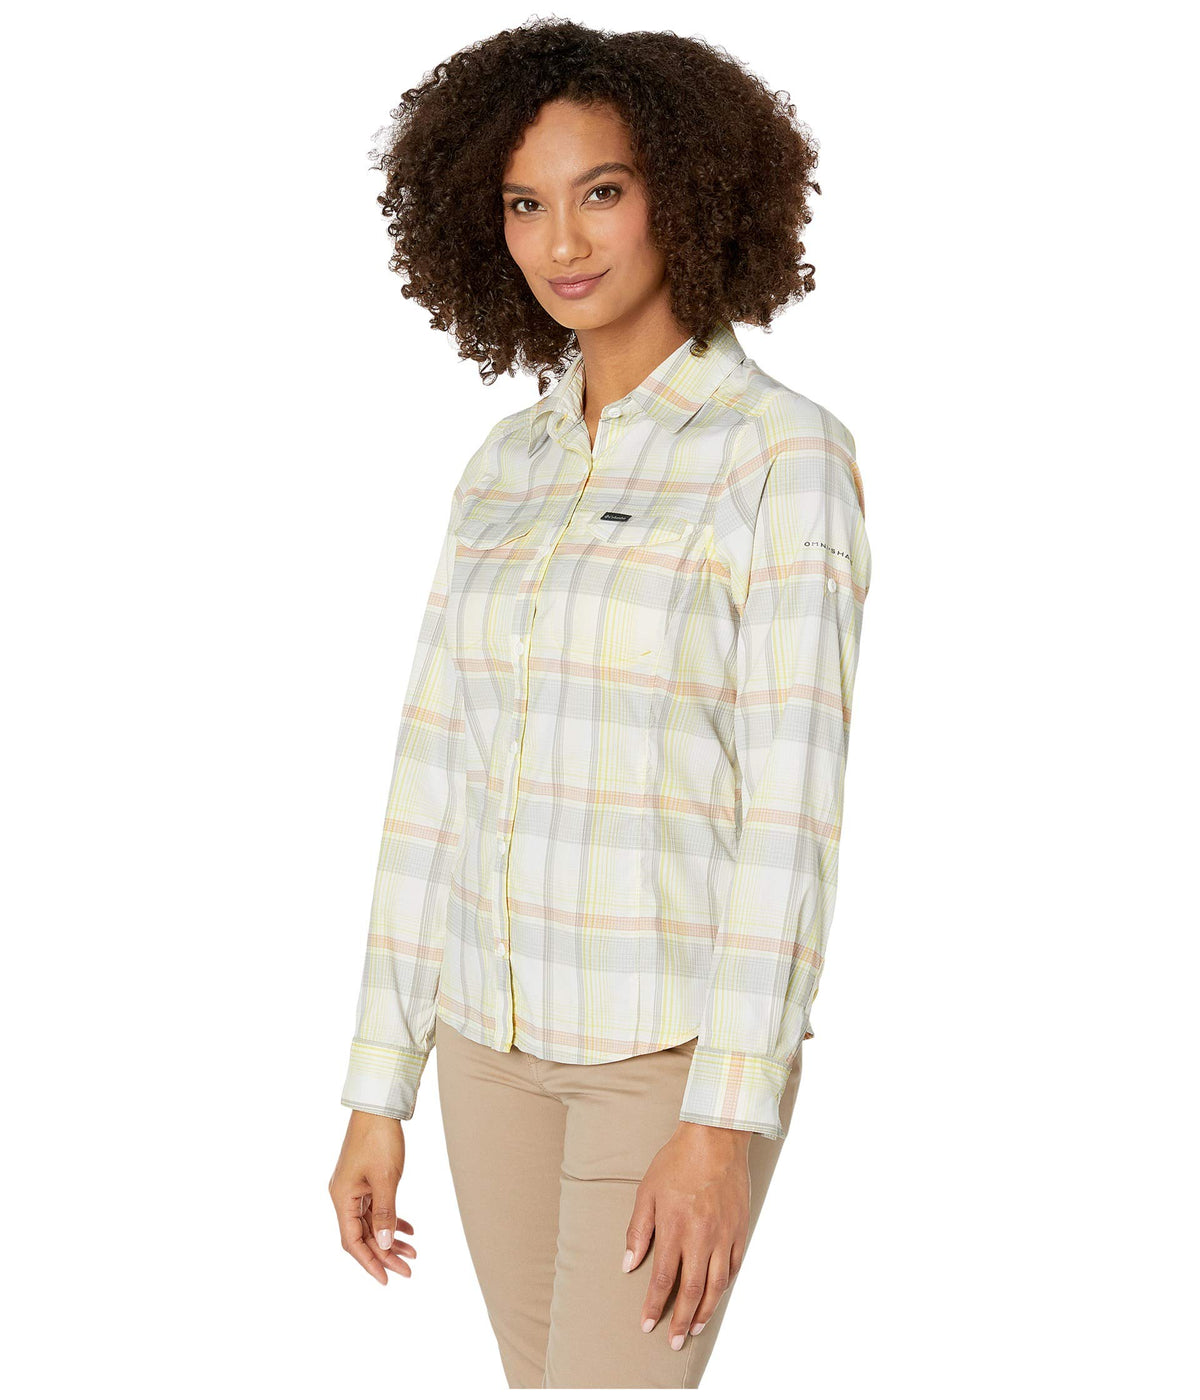 Silver Ridge Lite Plaid Long Sleeve Shirt